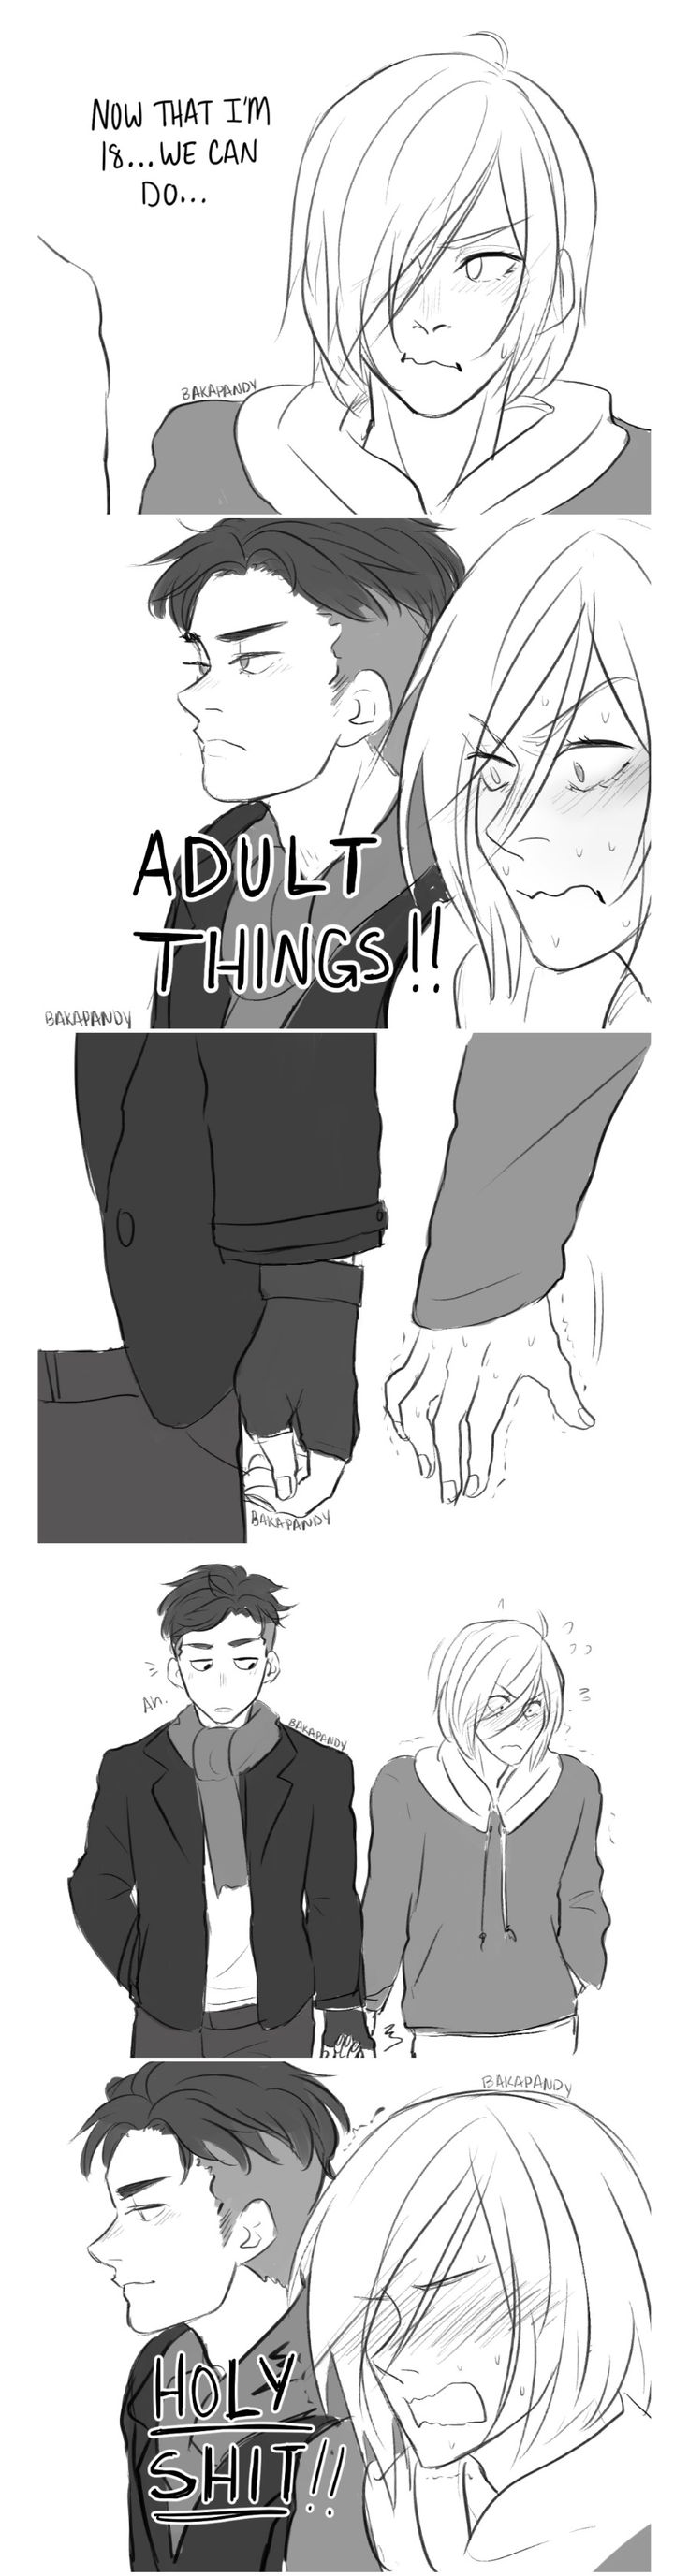 #otabek #yuri #yoi http://bakapandy.tumblr.com/post/154266430708/l-lookotayuri-is-good-and-pureotabek-would